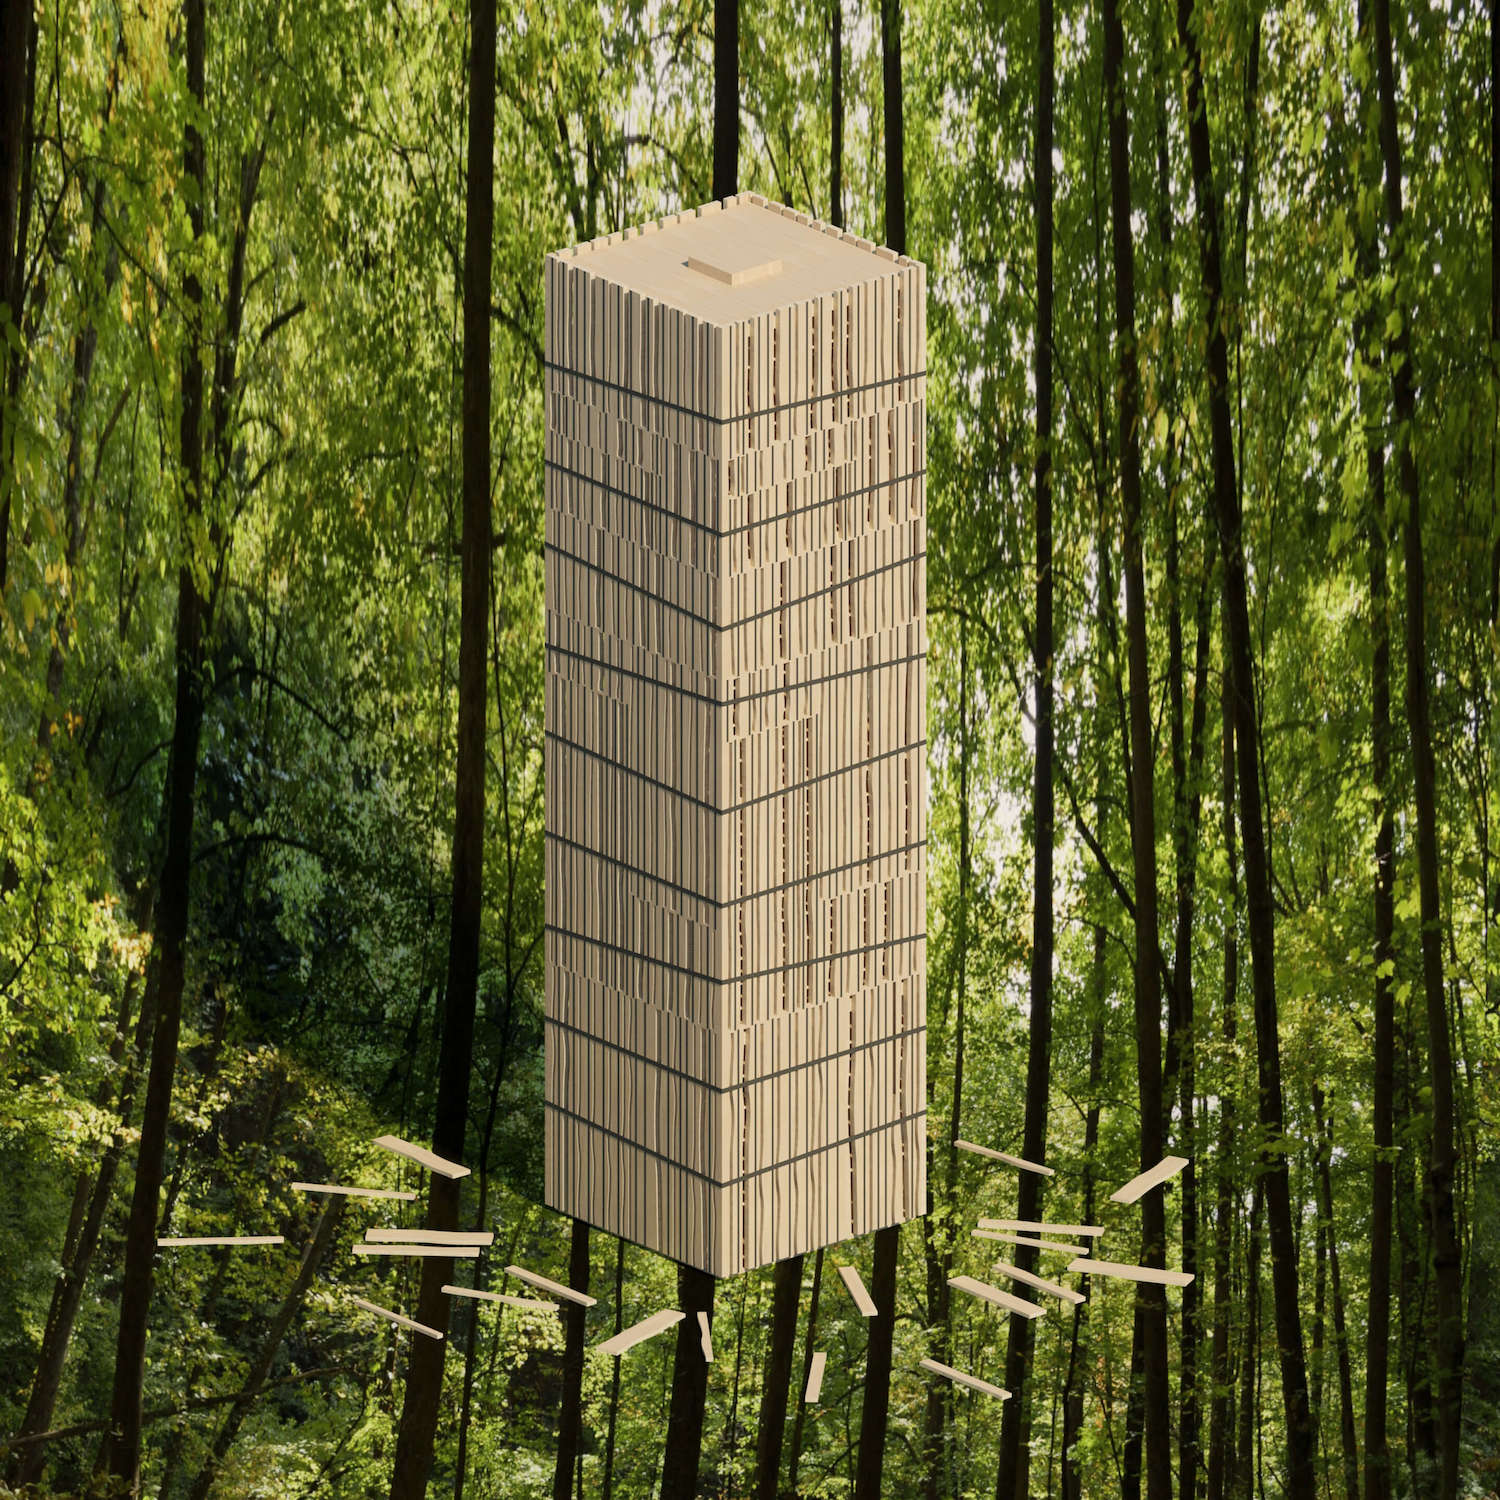 Rendering of a timber tower against bamboo